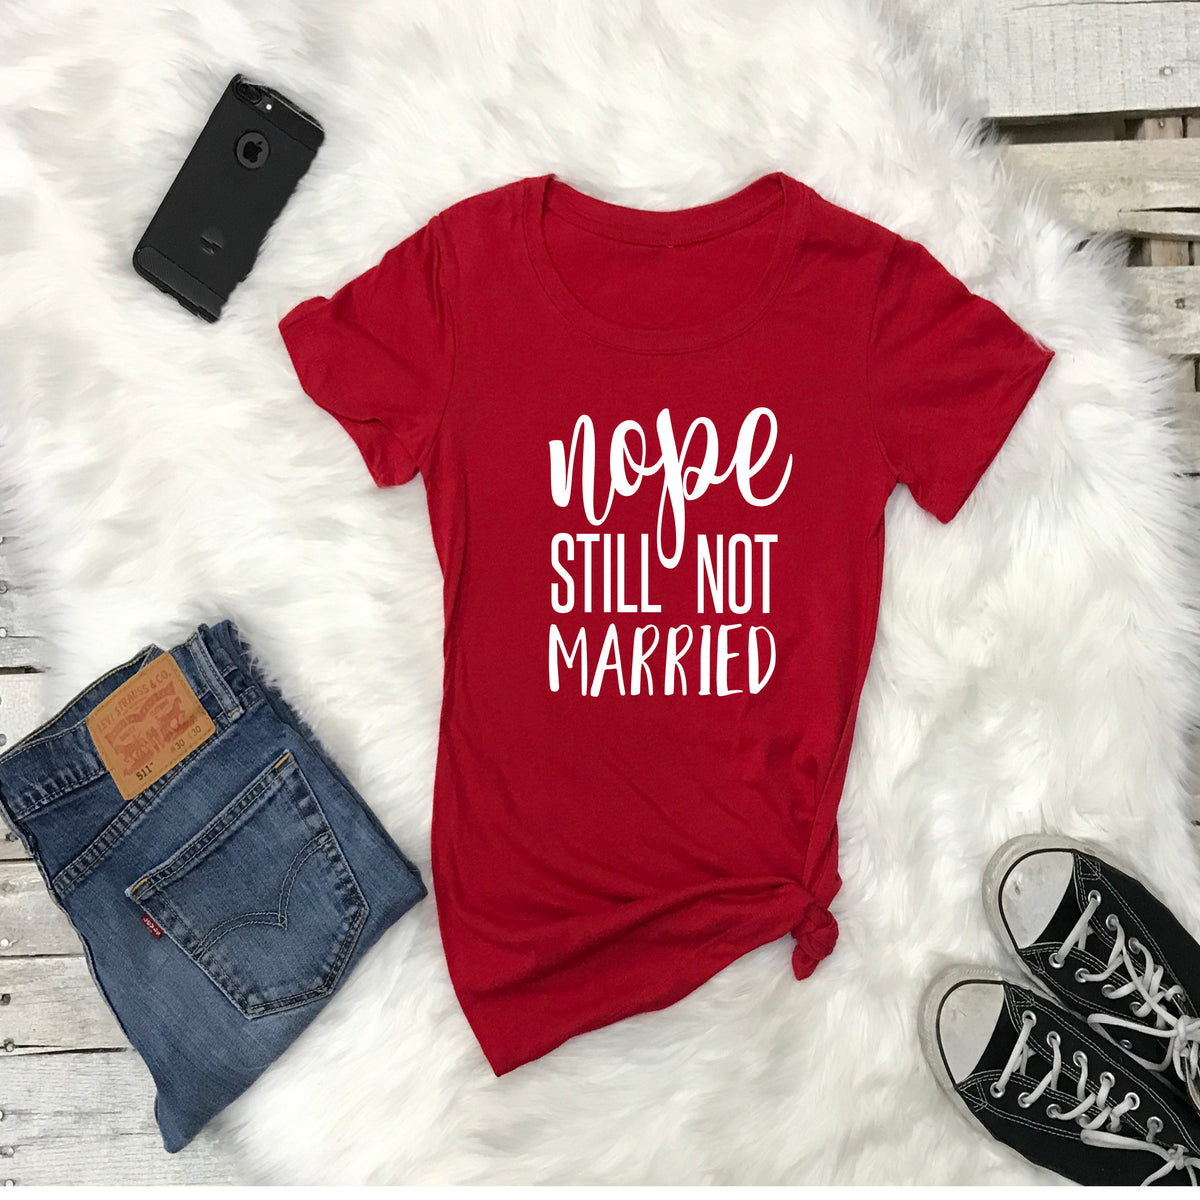 Women's Tshirt NOPE Still Not Married - Prfcto Lifestyle